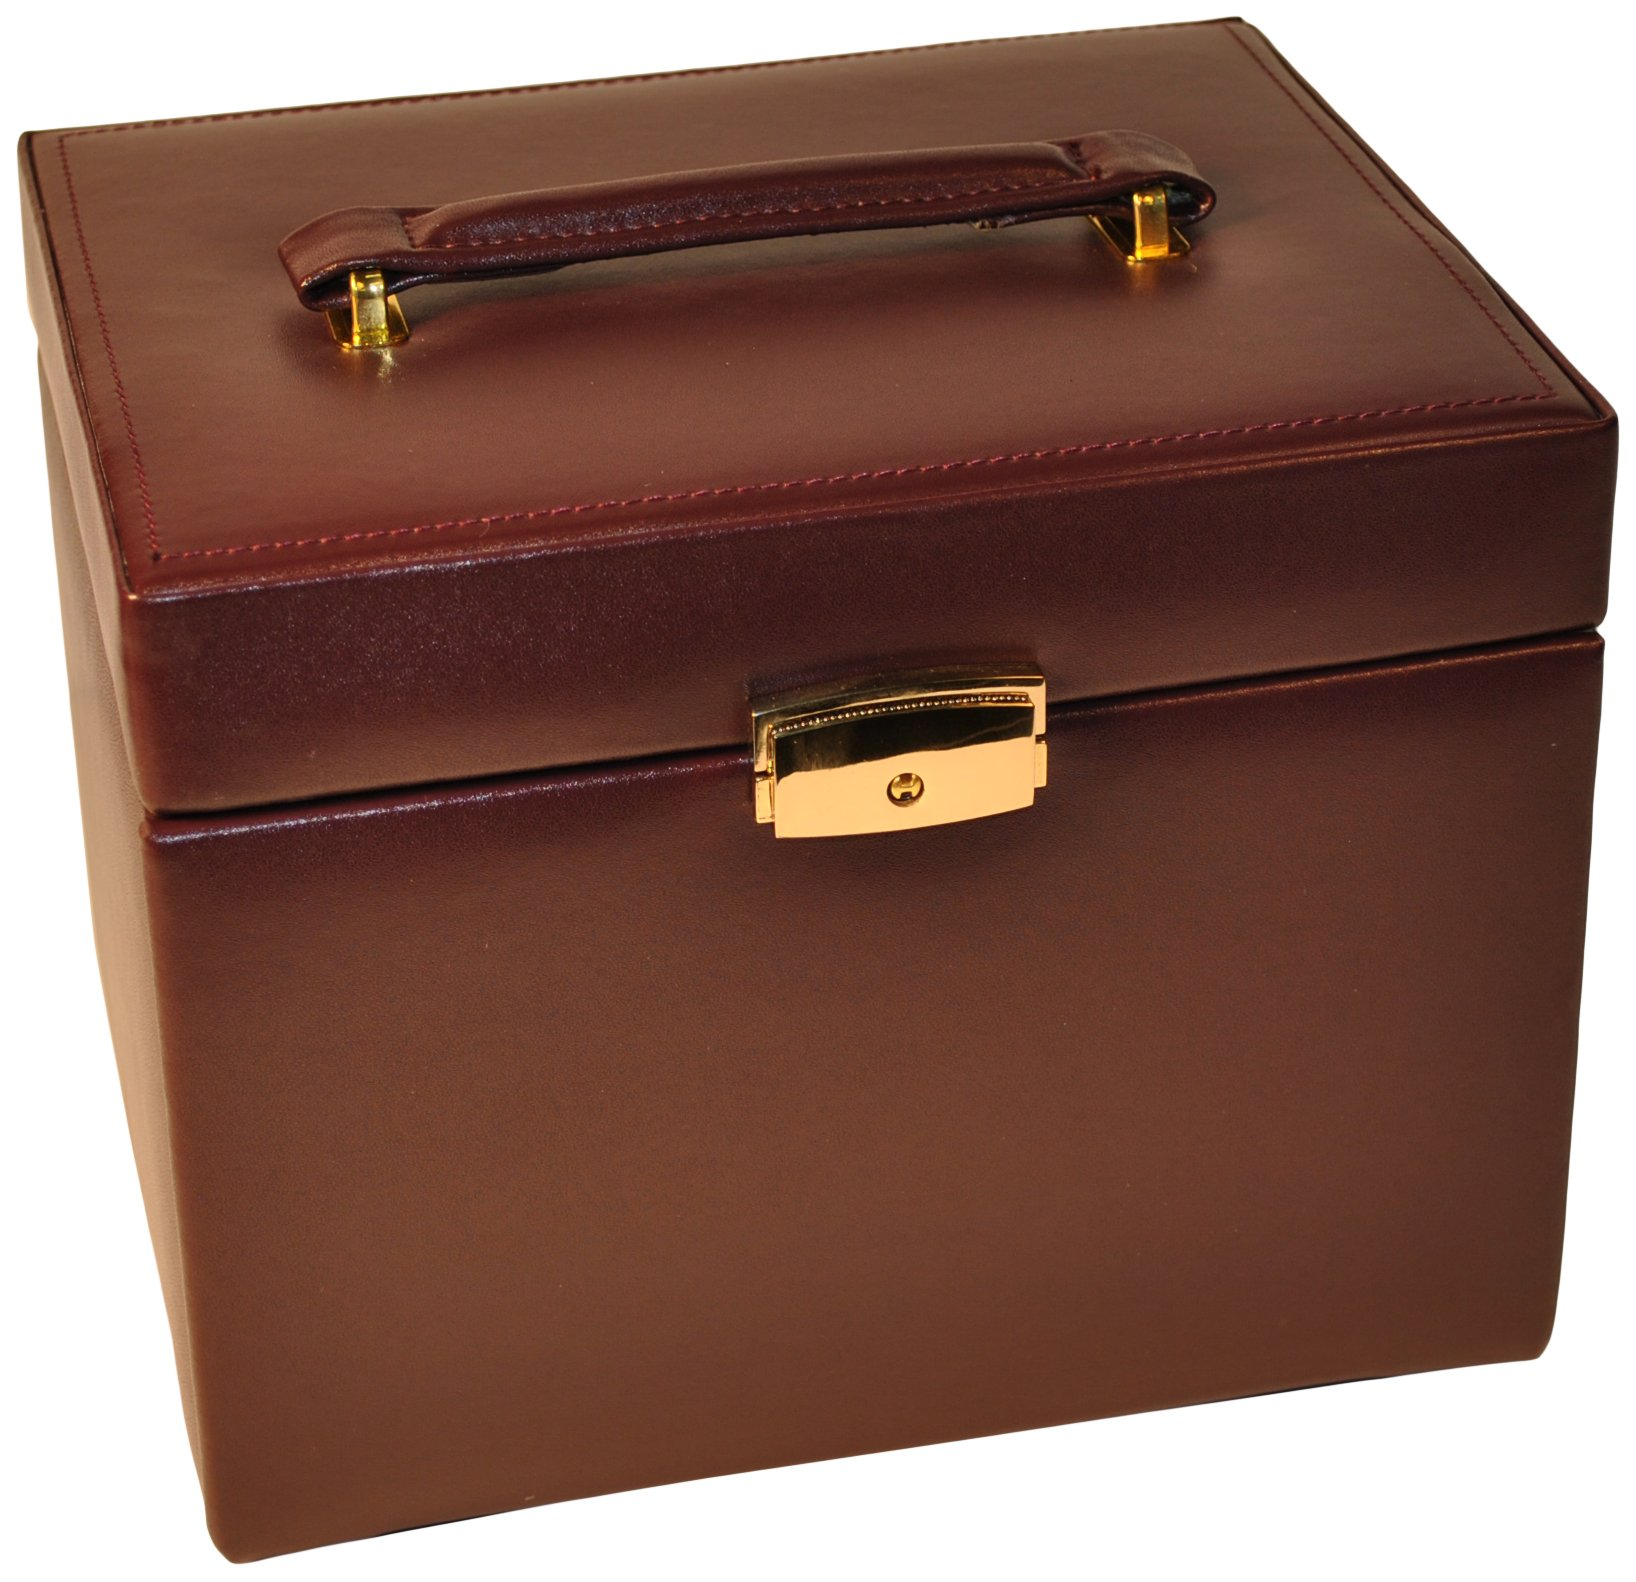 Budd Leather 4-Drawer Jewel Box with Travel Box, Large, Burgundy by Budd Leather (Image #1)